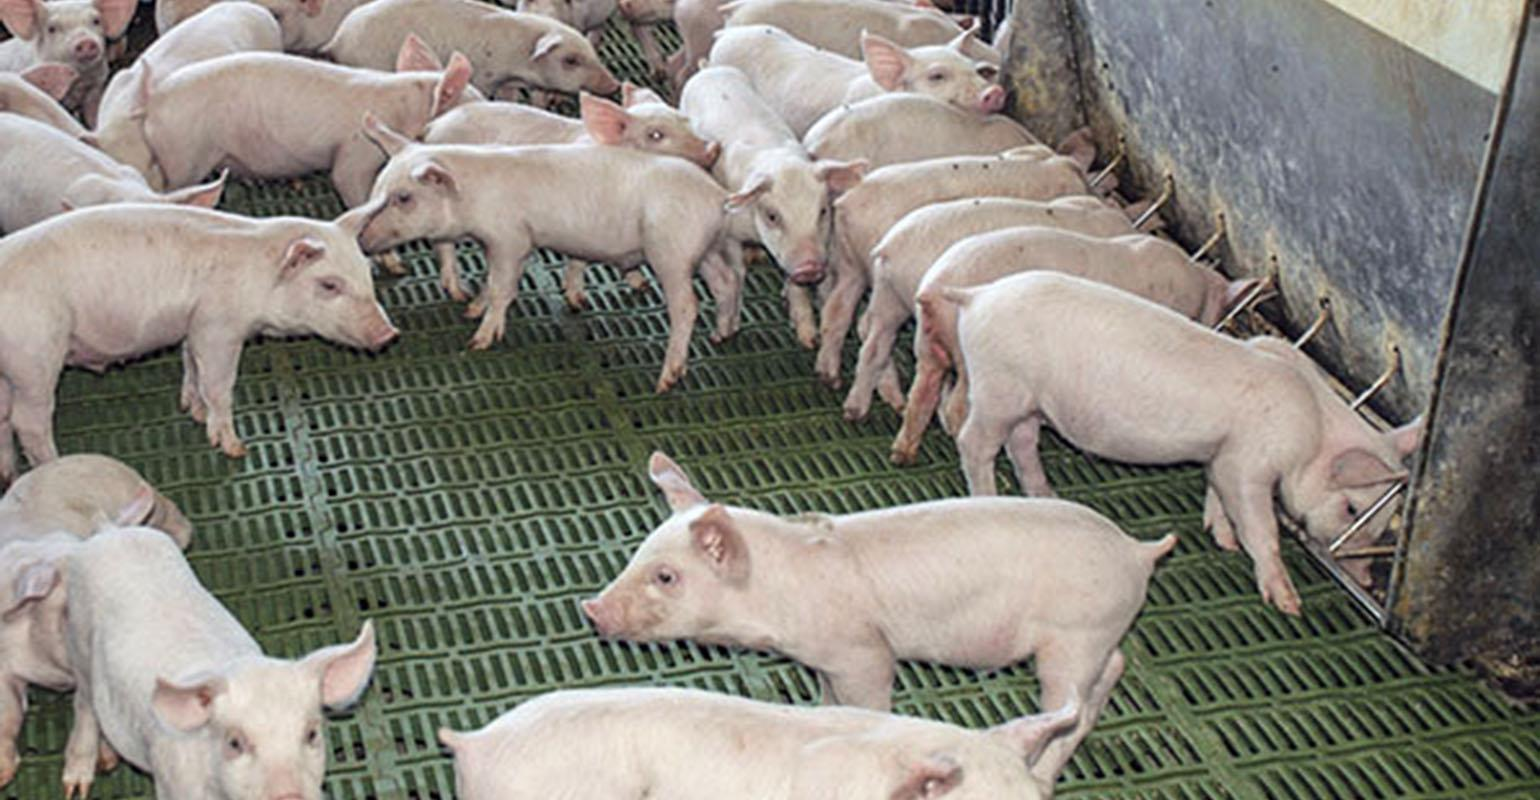 Does it pay to feed oils or fats to nursery pigs? | National